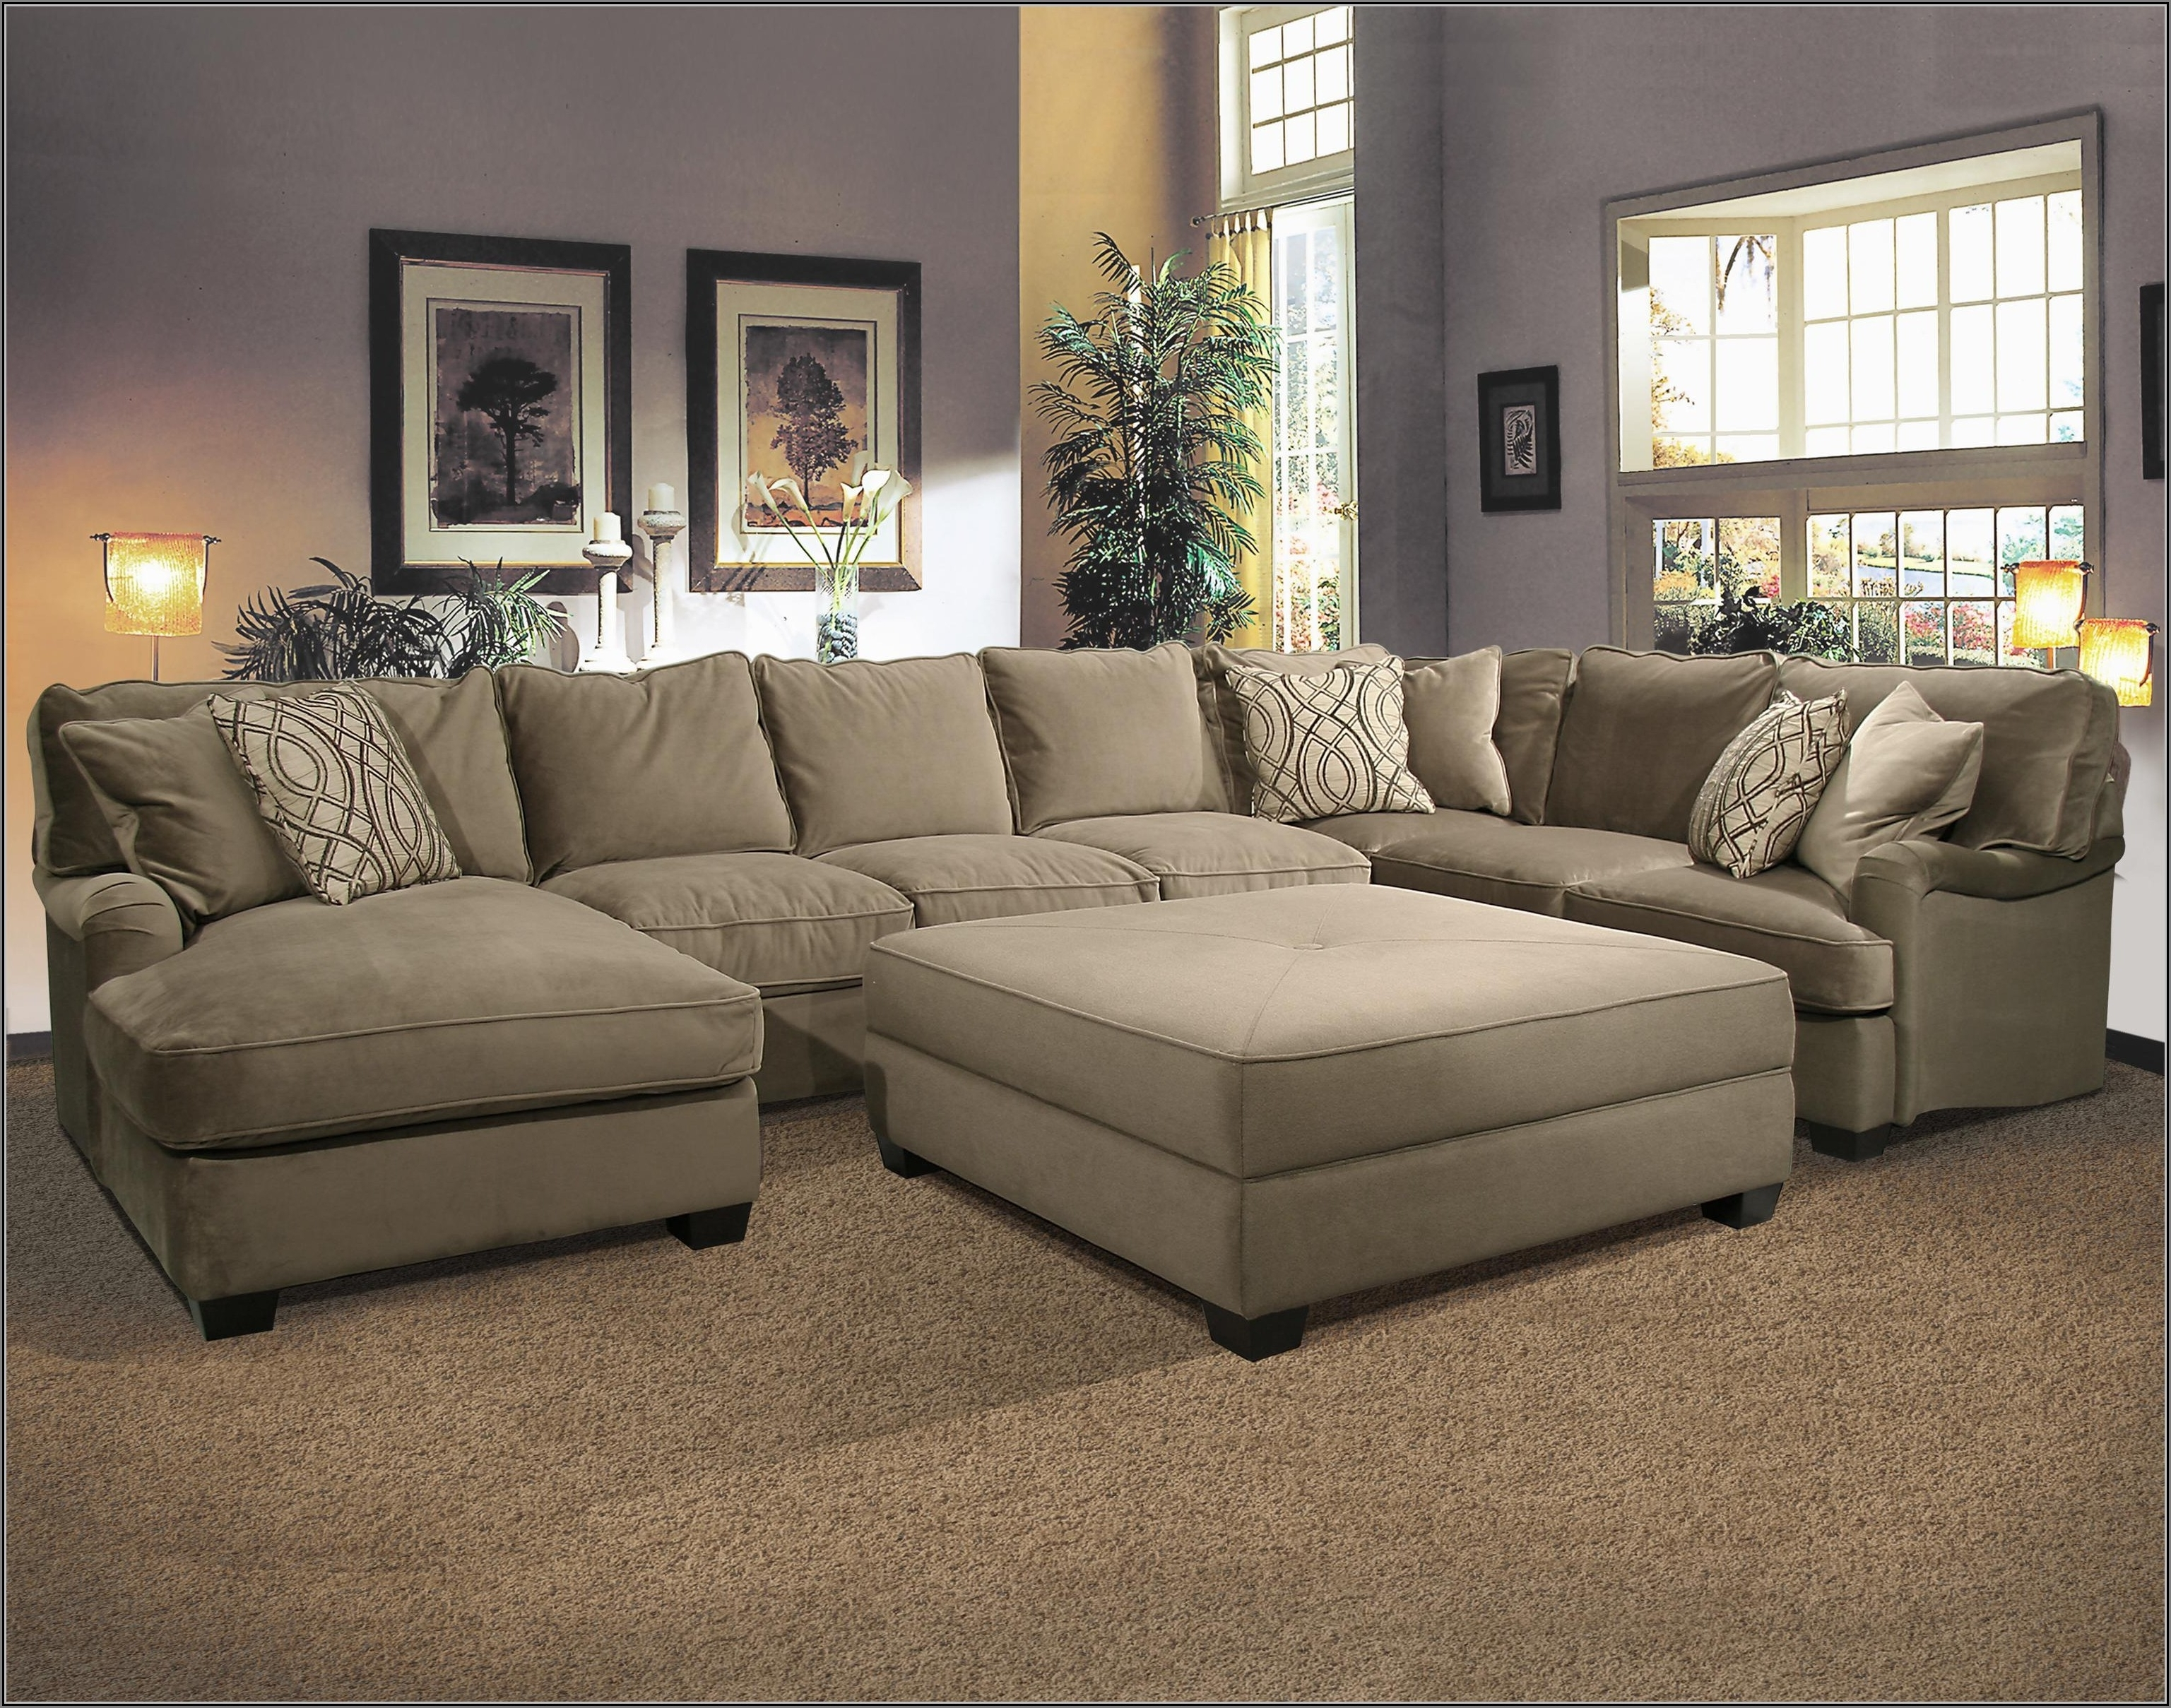 Sectional Sofa With Large Ottoman Hotelsbacau Com Intended For Regarding Widely Used Sectionals With Ottoman (View 7 of 15)